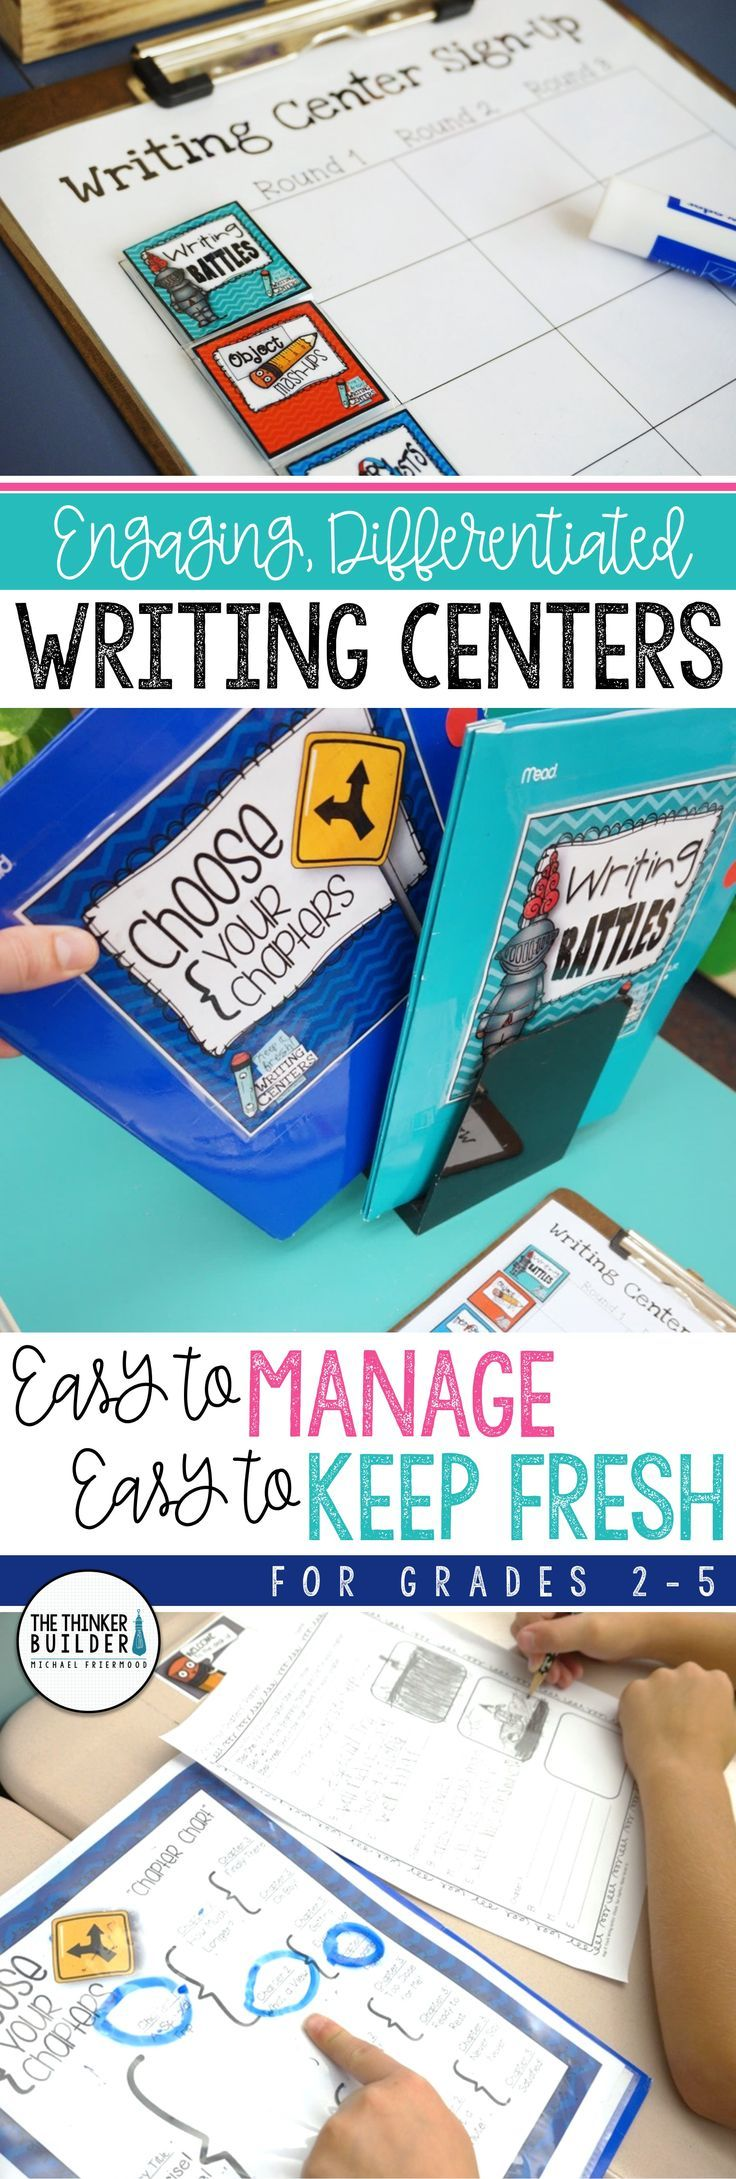 "Engaging, differentiated writing centers that give students a variety of meaningful writing practice. Each center includes student directions, planning organizer, writing paper, and writing tips. Includes assembly instructions to create ""take-and-go"" folders, sign-up charts, record sheets, and idea lists to make the centers easy to manage and easy to keep fresh. 17 complete centers included in the bundle. Gr 2-5 ($)"